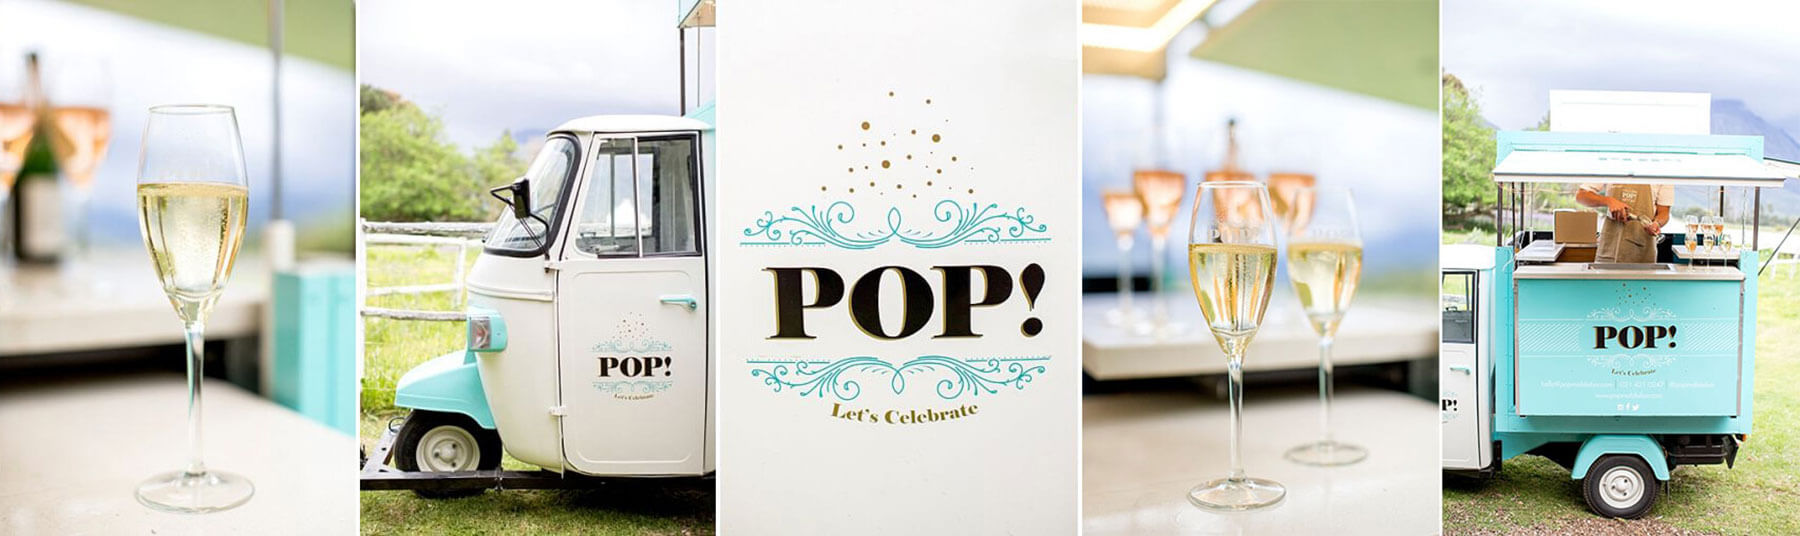 Pop Mobile Bubbly Bar by Source Food